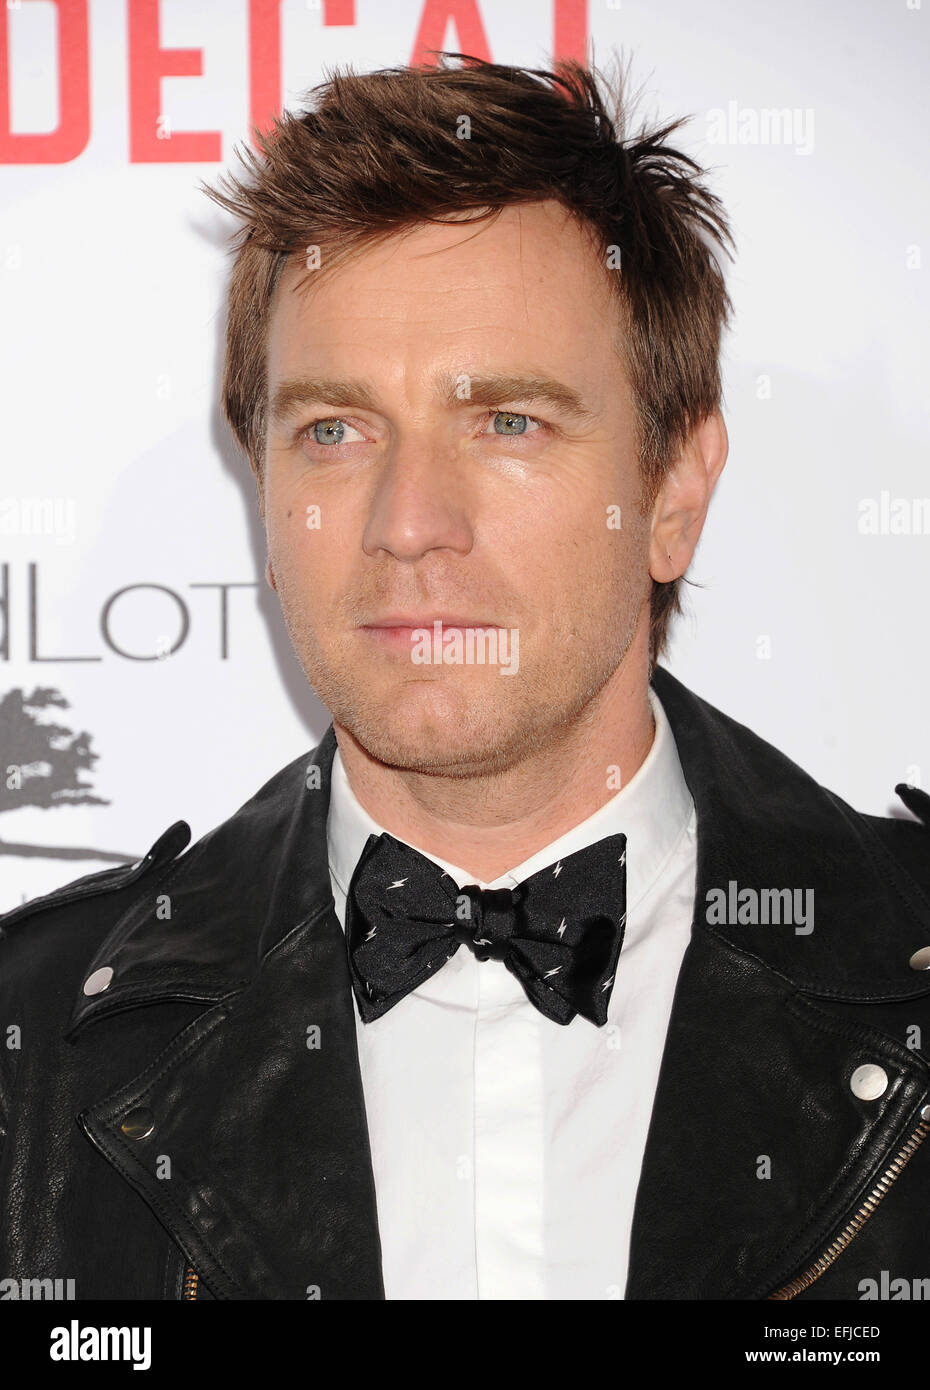 Ewan Mcgregor Actor High Resolution Stock Photography And Images Alamy